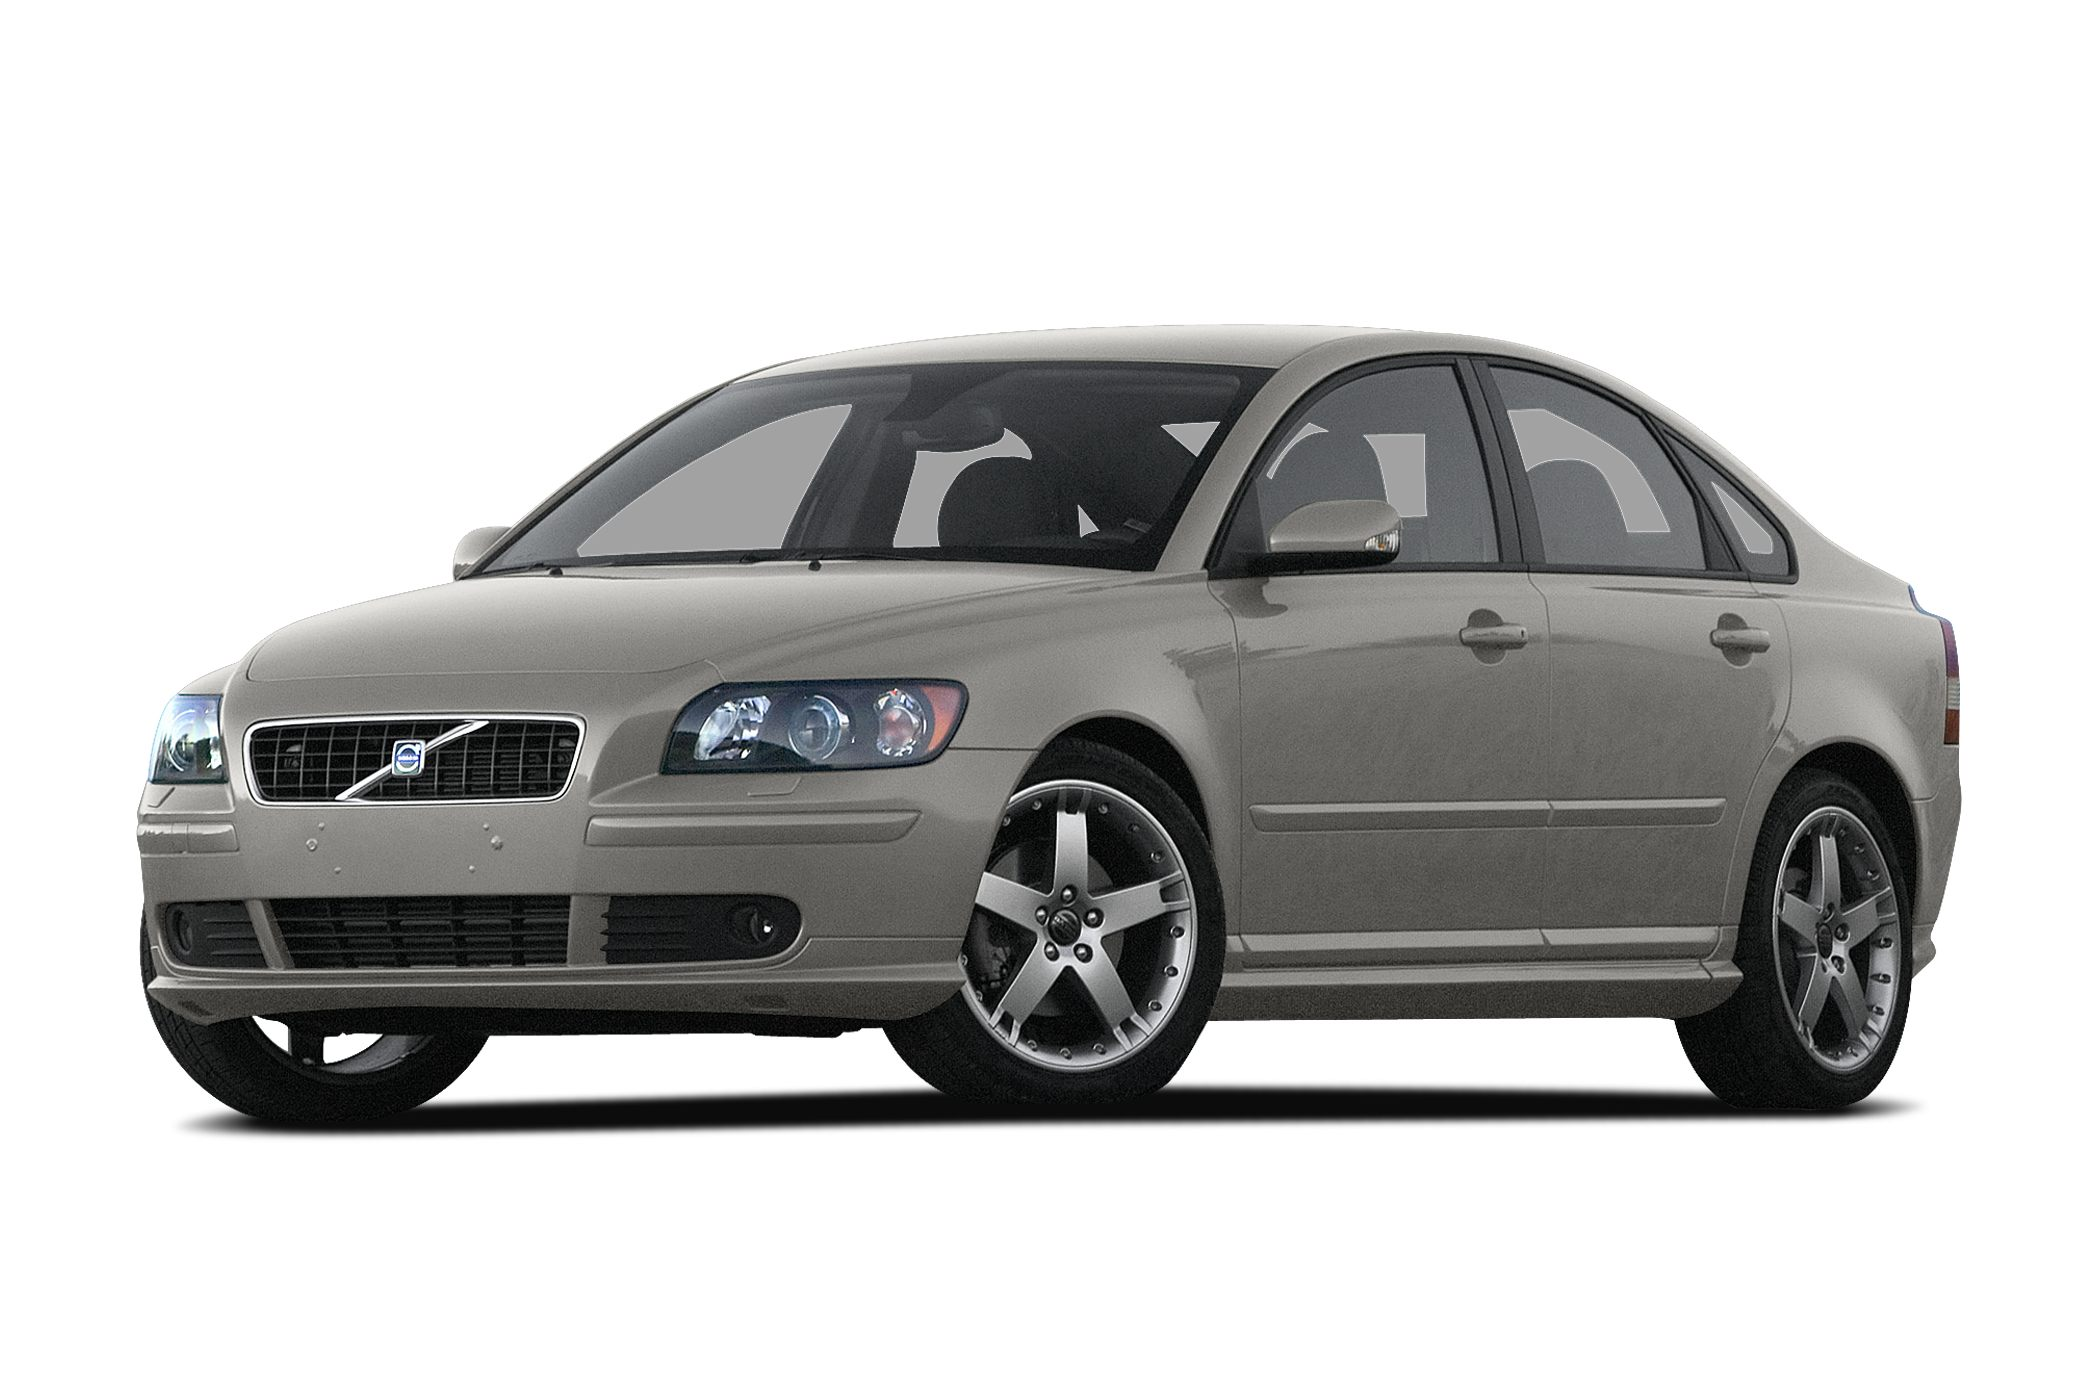 2007 Volvo S40 24i S40 24i and Off-Black wLeather Seating Surfaces Volvo FEVER At David Stanl